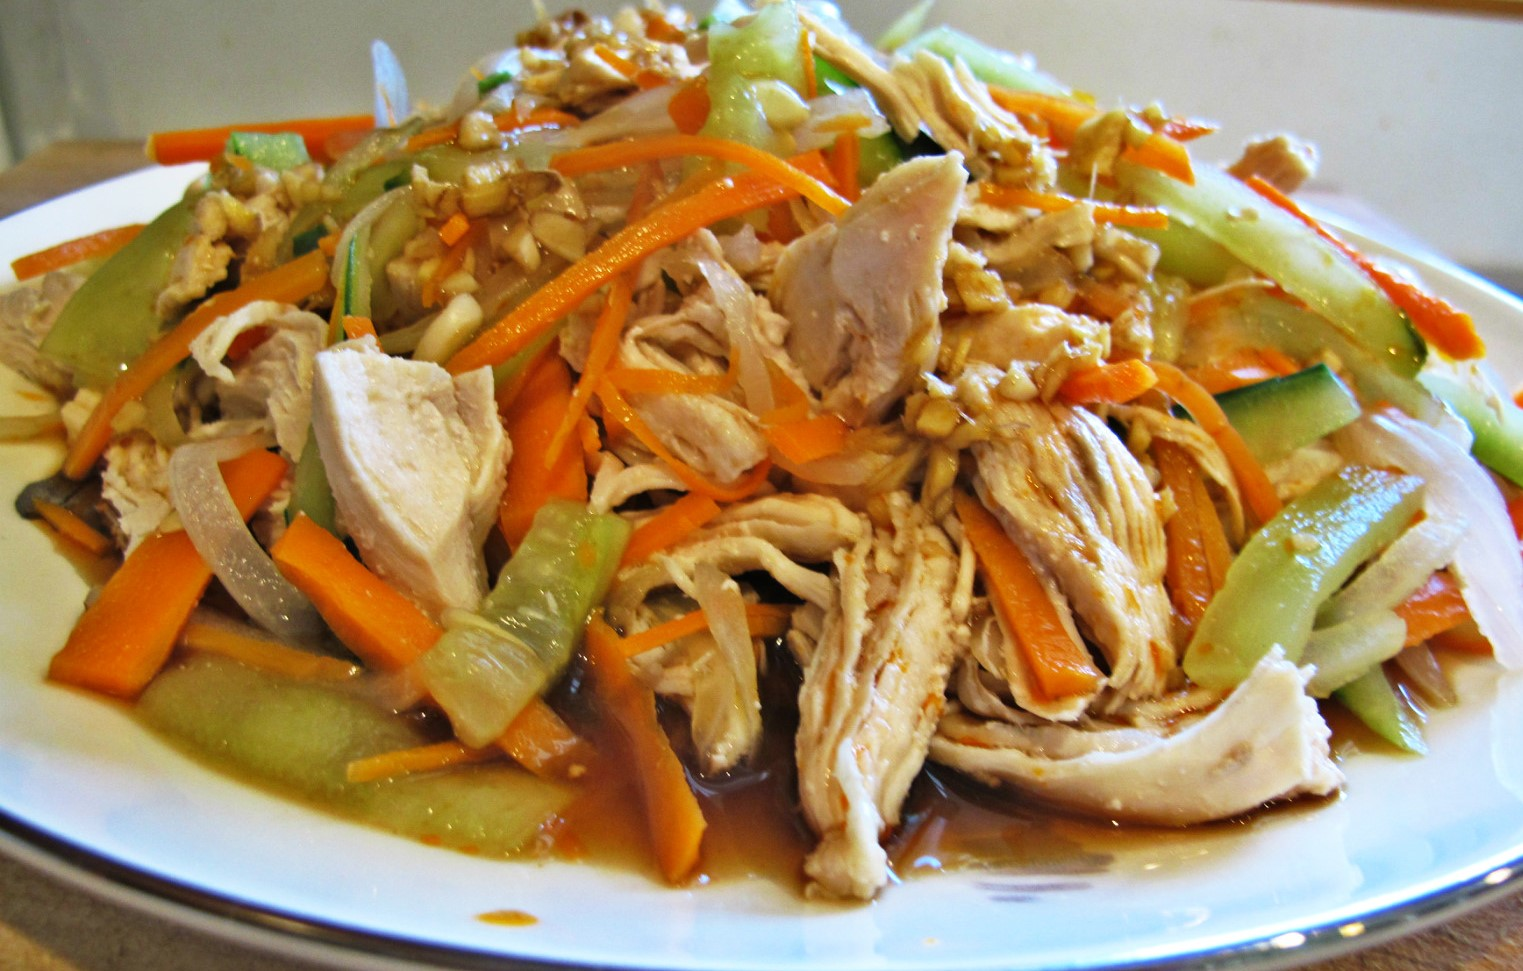 Cool chicken with Mixed Vegetables